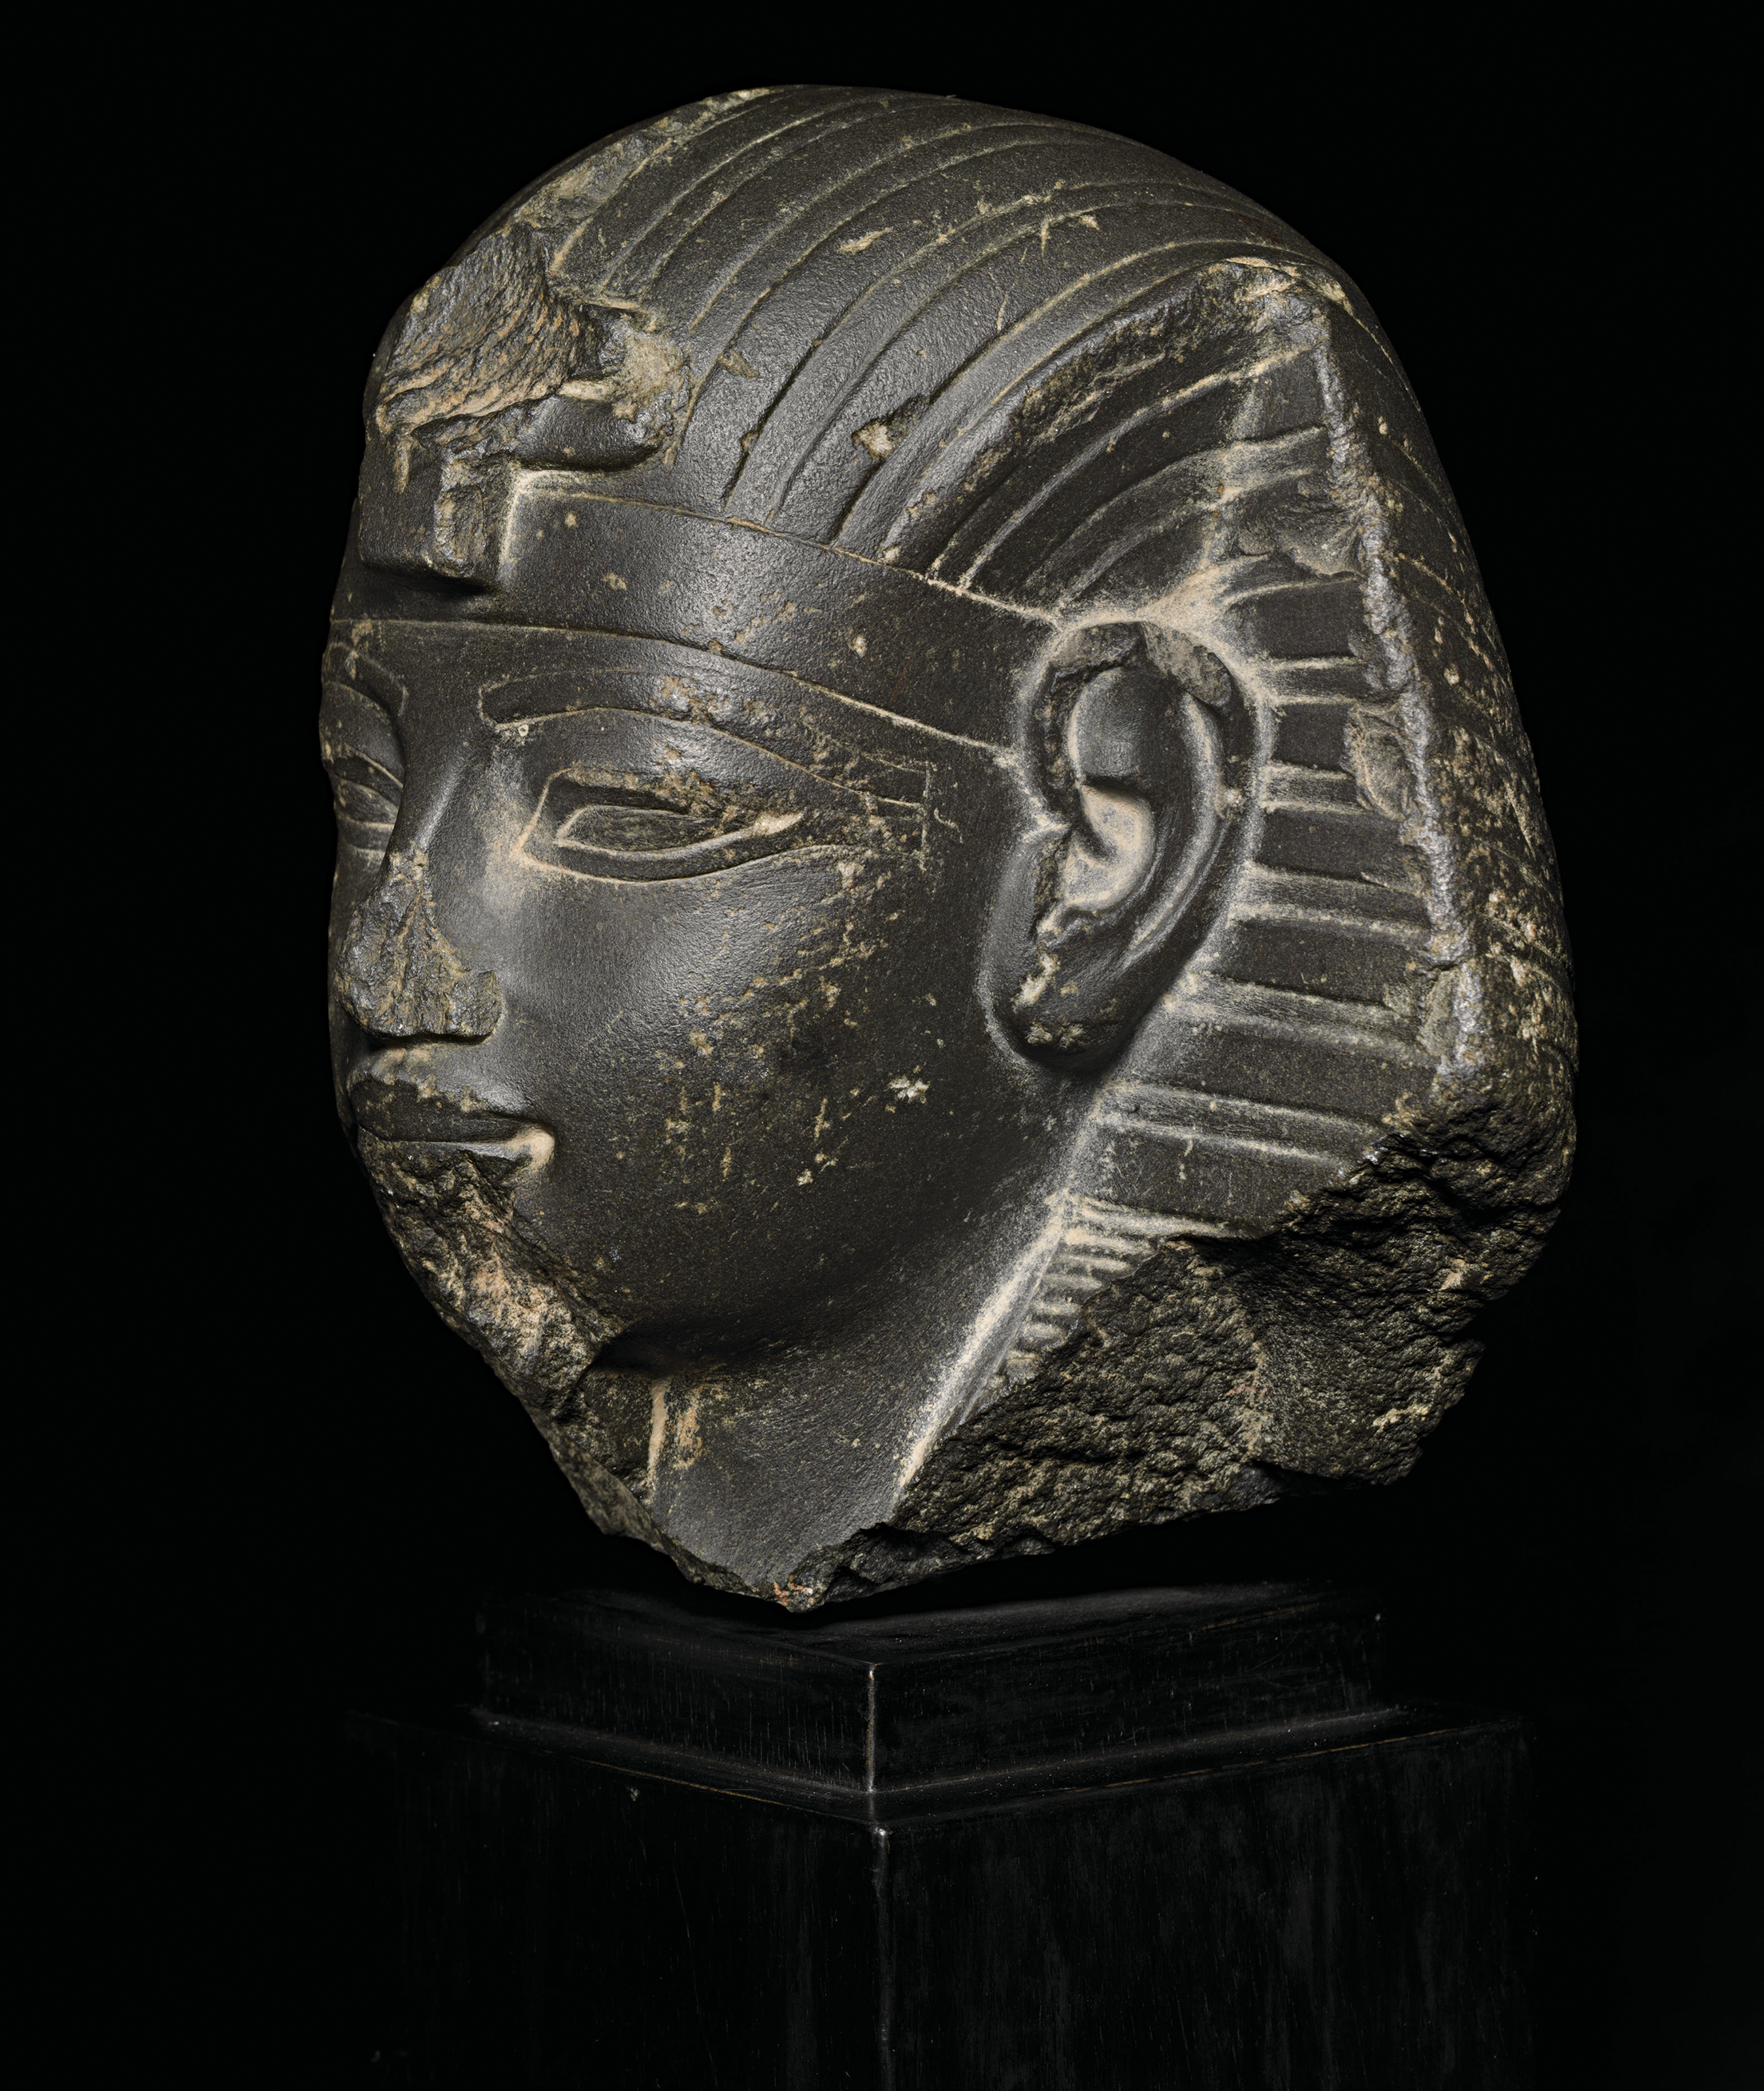 amenhotep essay 1 Photo added 1-3-00 - profile of moses/yeshua with references to masonic  moses and the israelites  you may notice in this site an essay about reincarnation.